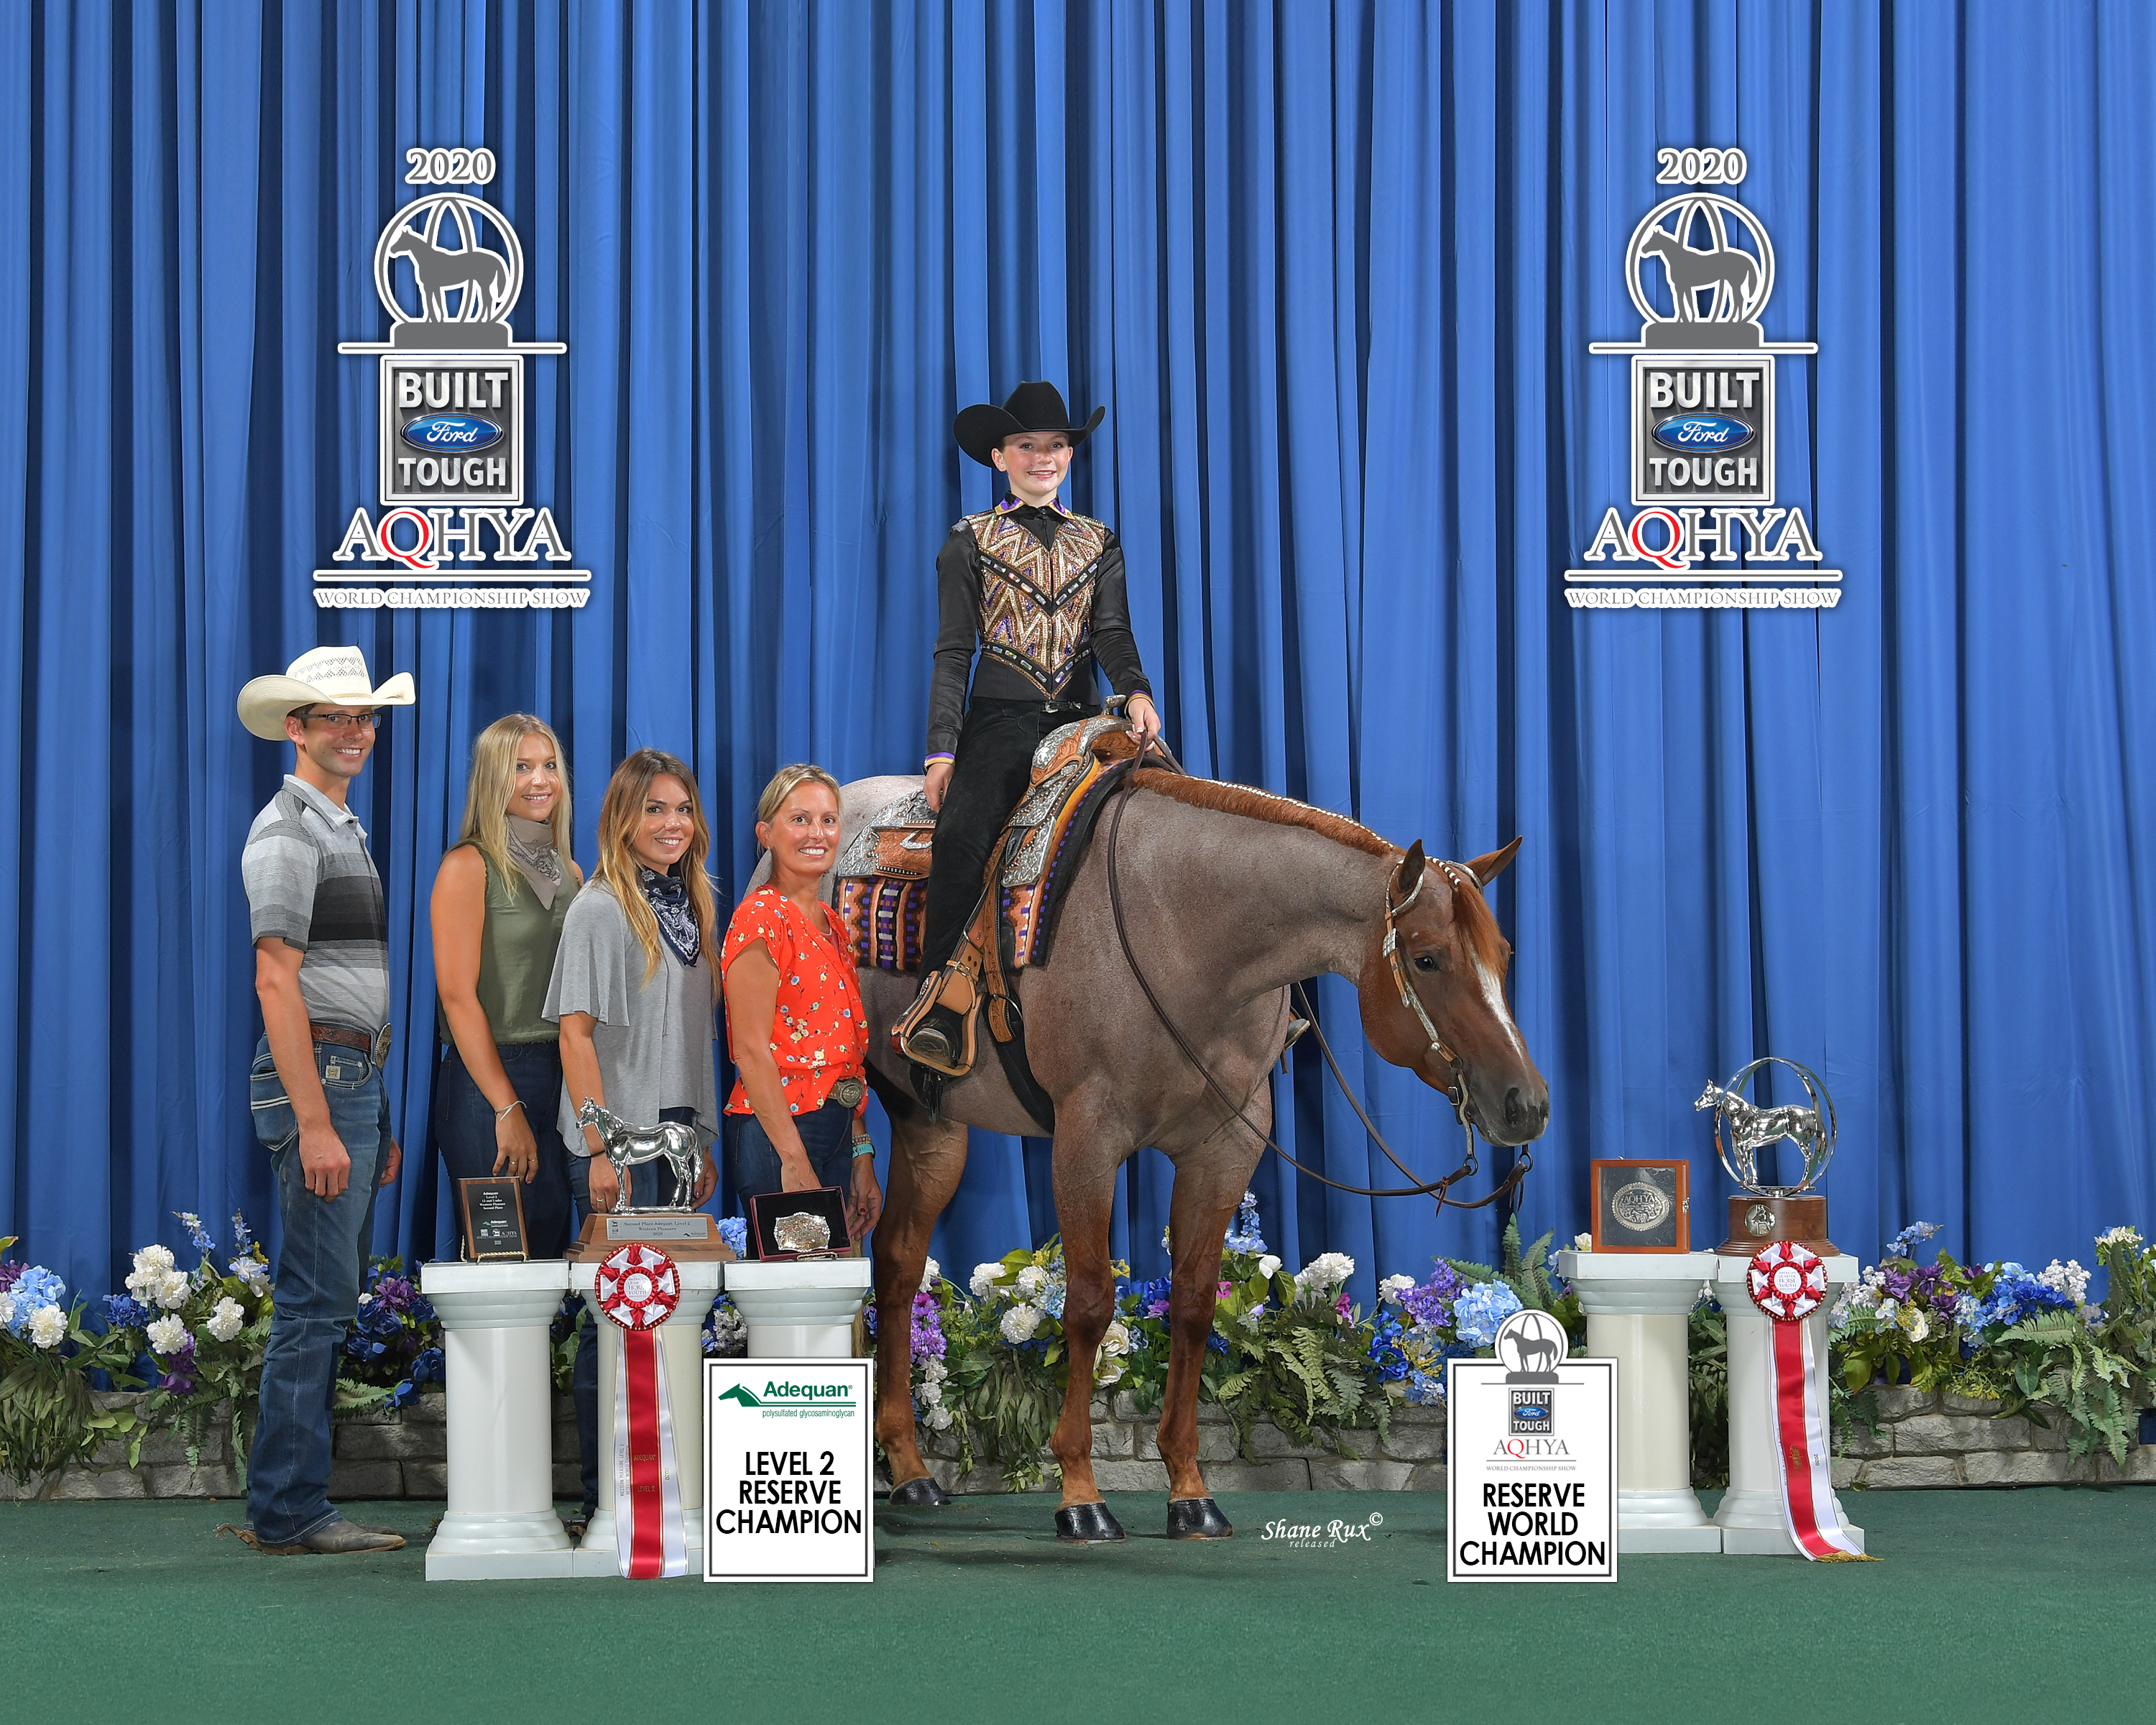 2020 Reserve World Champion